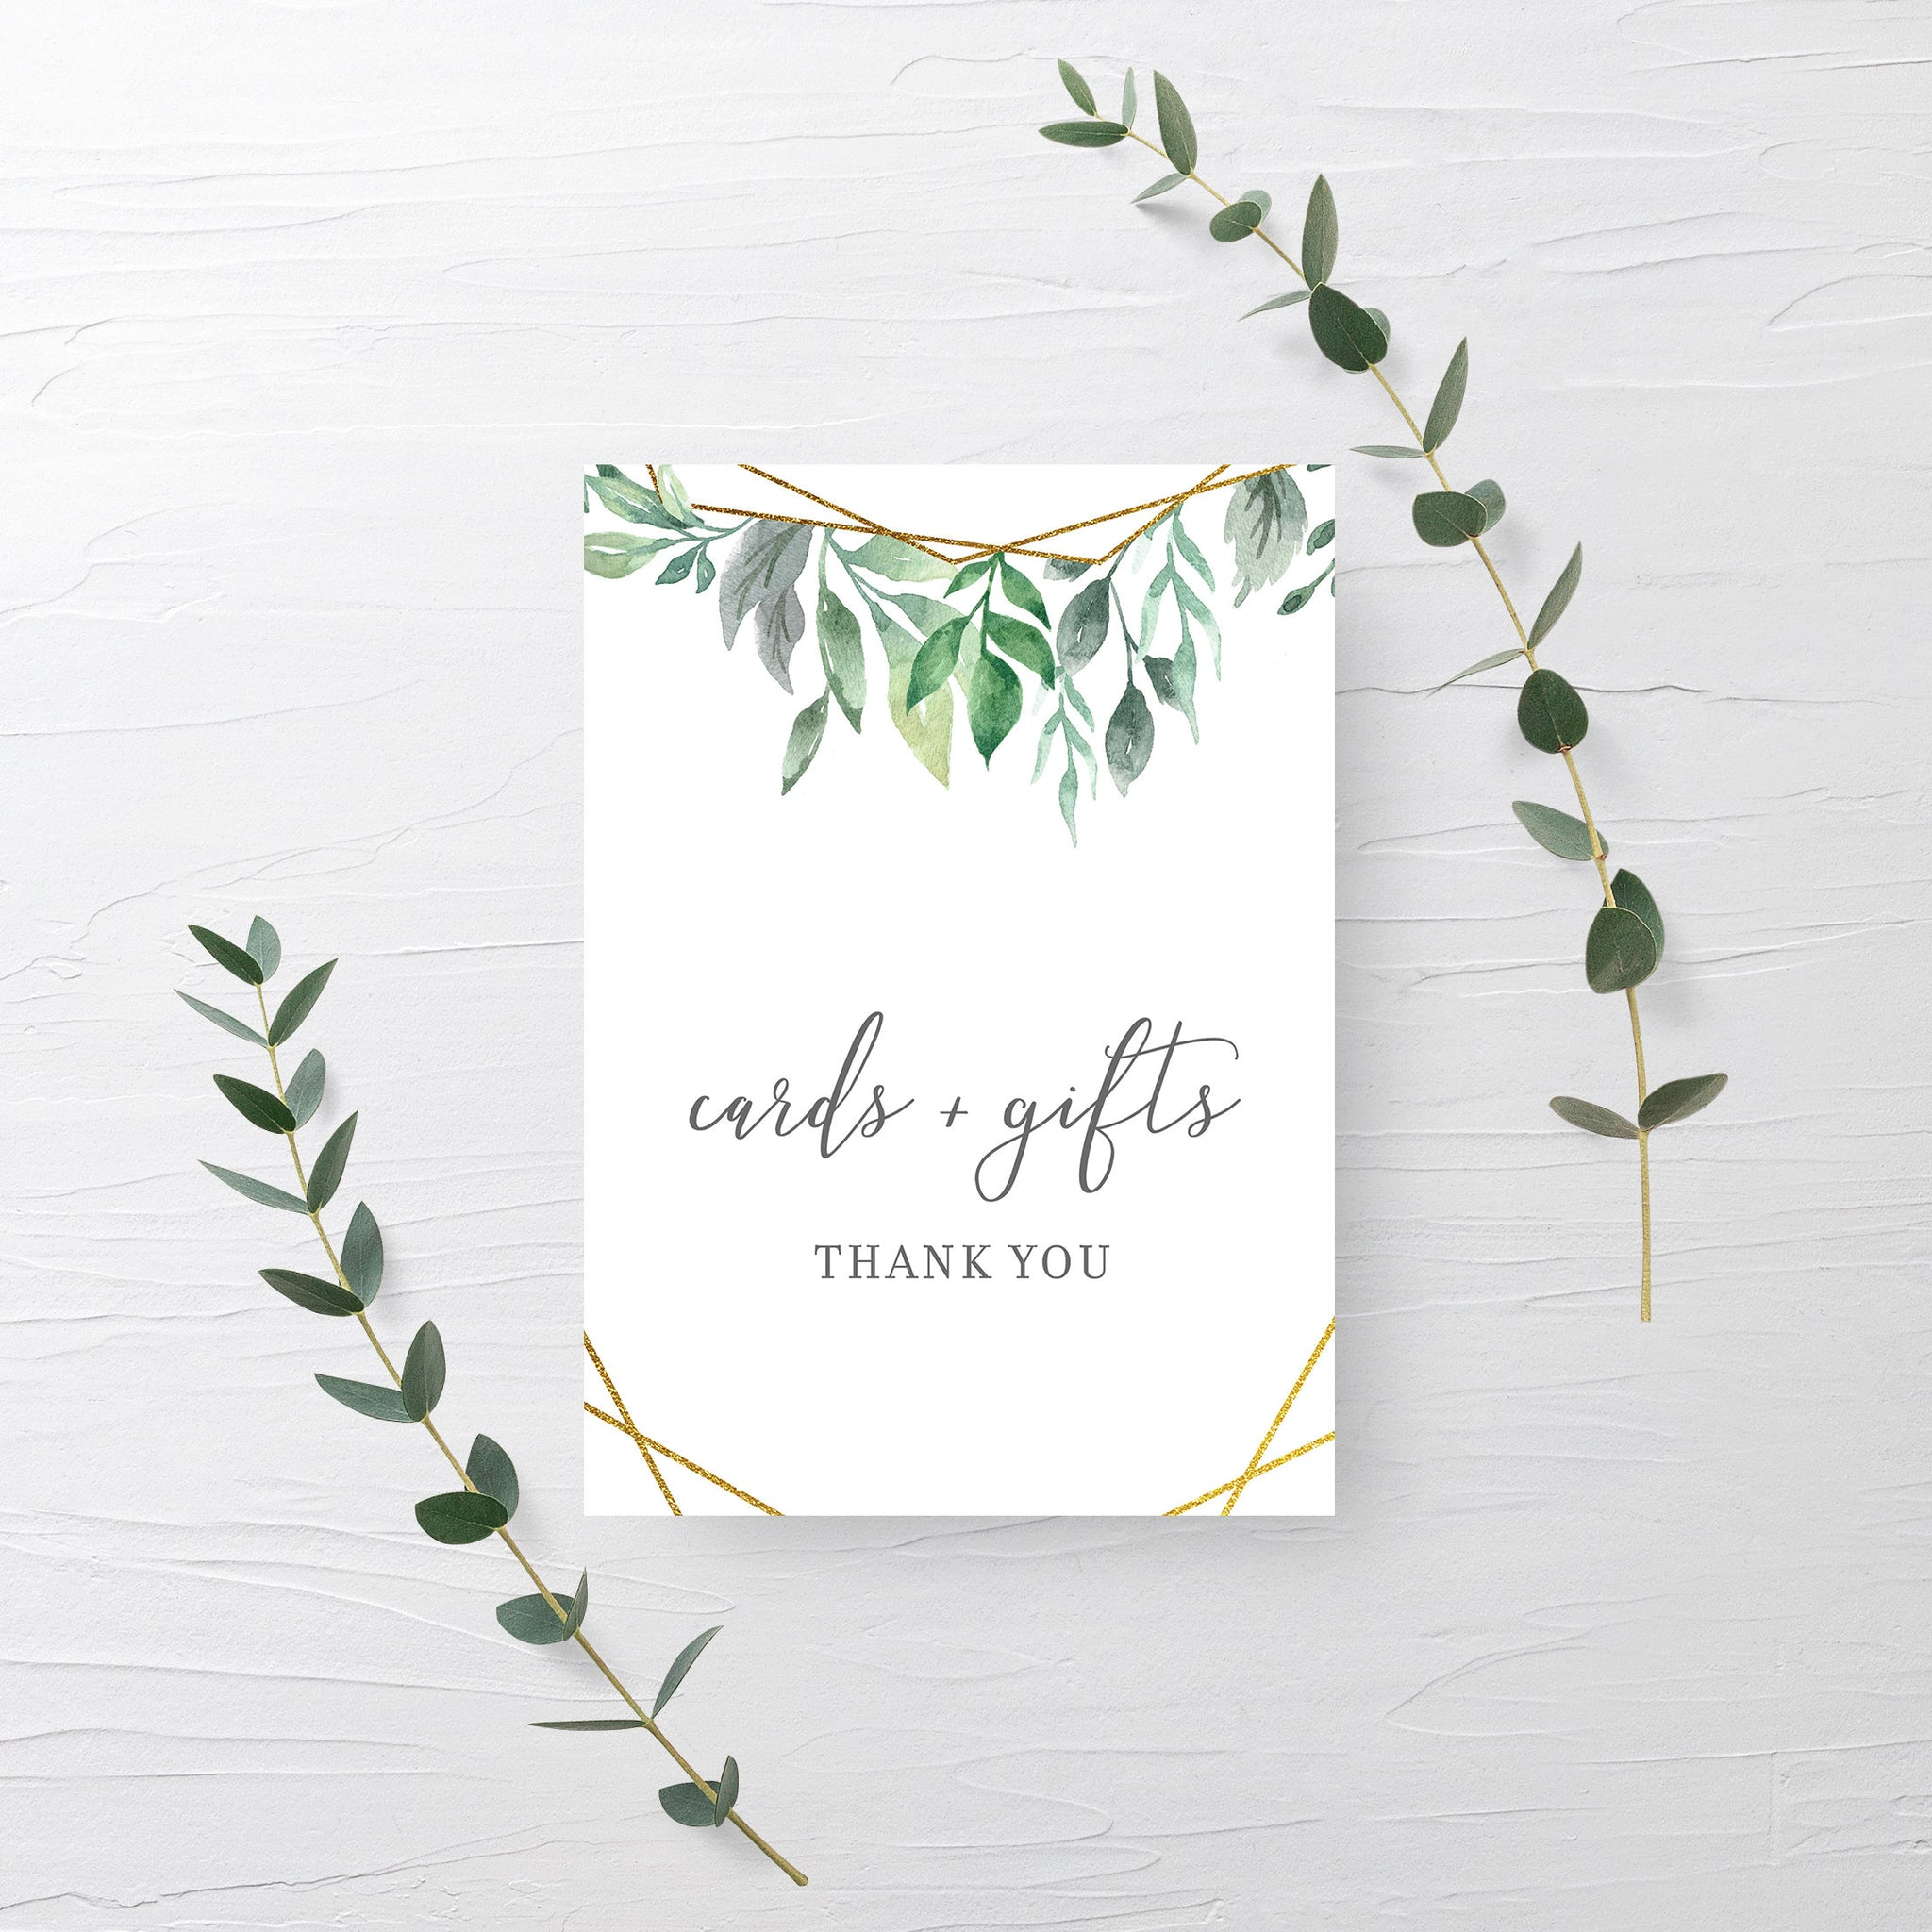 Geometric Gold Greenery Cards and Gifts Printable Sign INSTANT DOWNLOAD, Bridal Shower, Baby Shower, Wedding Decorations Supplies - GFG100